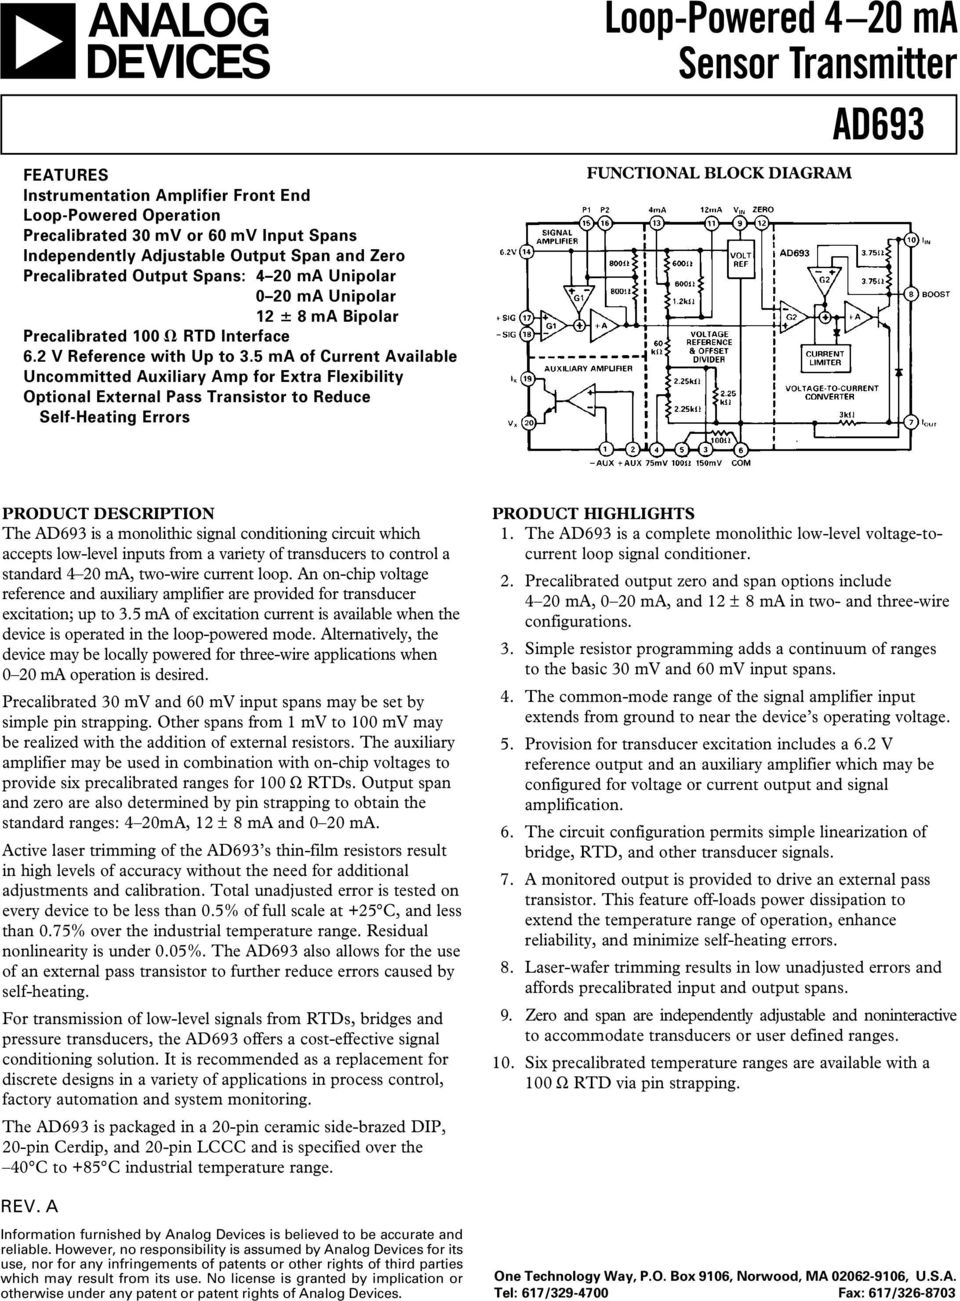 Loop Powered 4 20 Ma Sensor Transmitter Ad693 Pdf Analog Signal Isolator 20ma Generator Schematic 5 Of Current Available Uncommitted Auxiliary Amp For Extra Flexibility Optional External Pass Transistor To